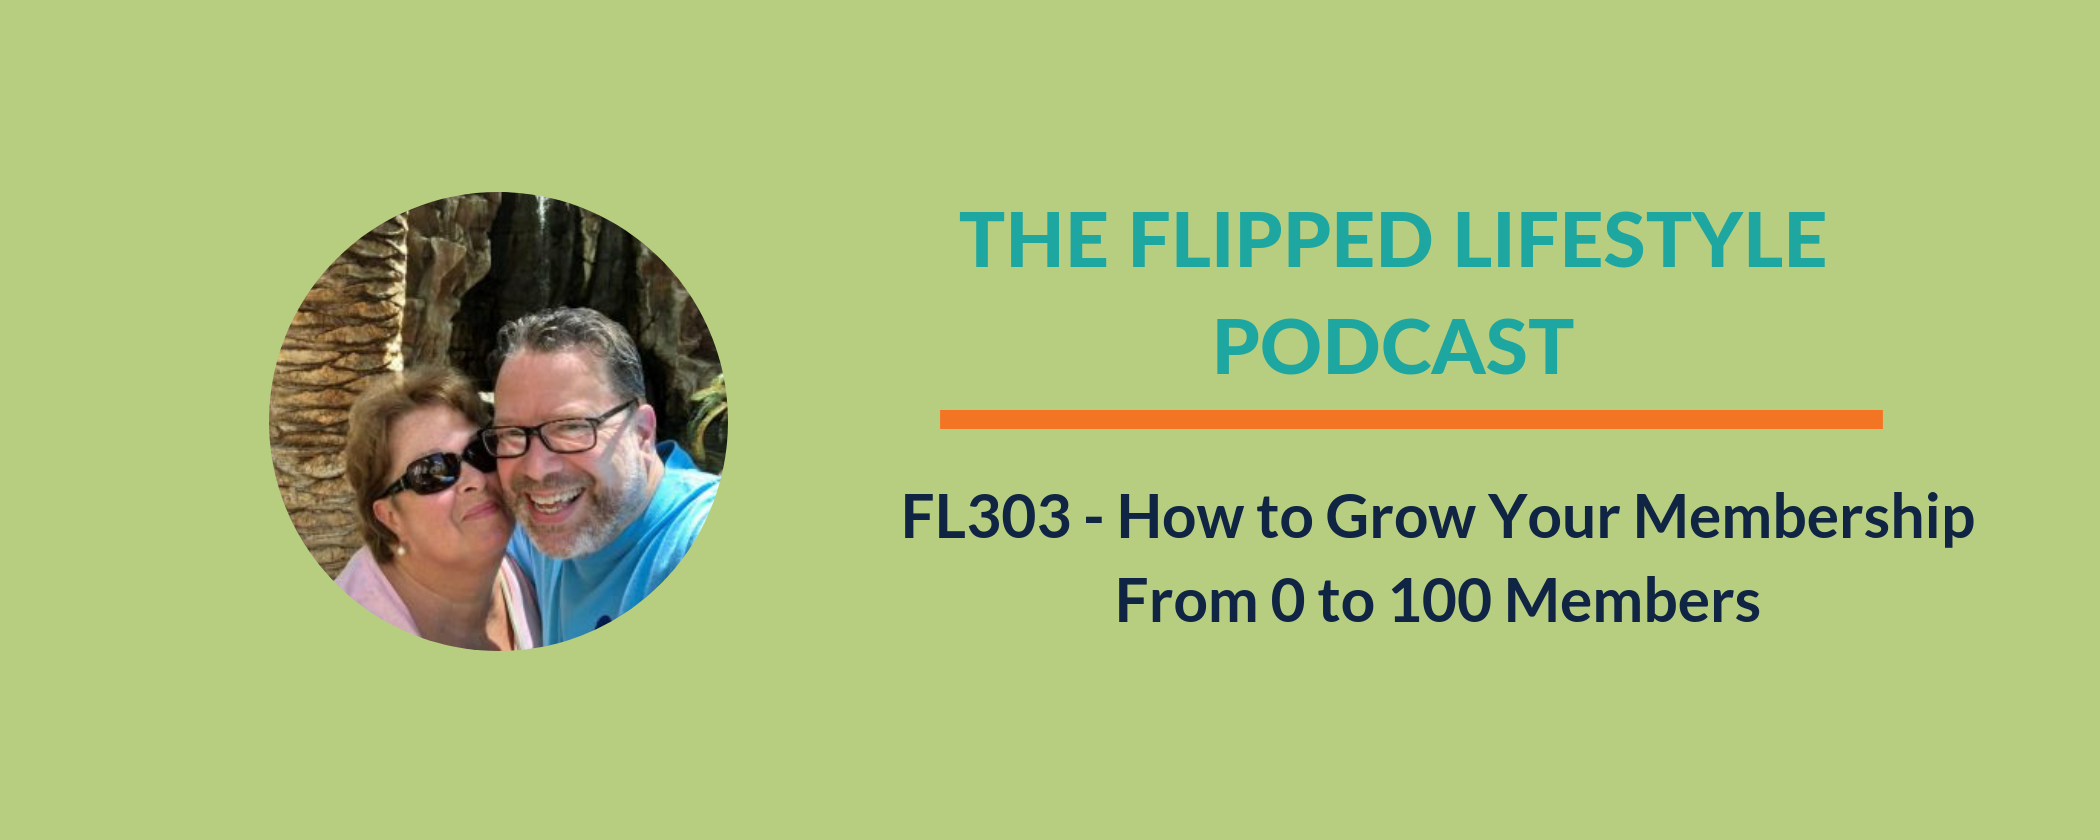 EARLY PODCAST:  FL303 - How to Grow Your Membership From 0 to 100 Members